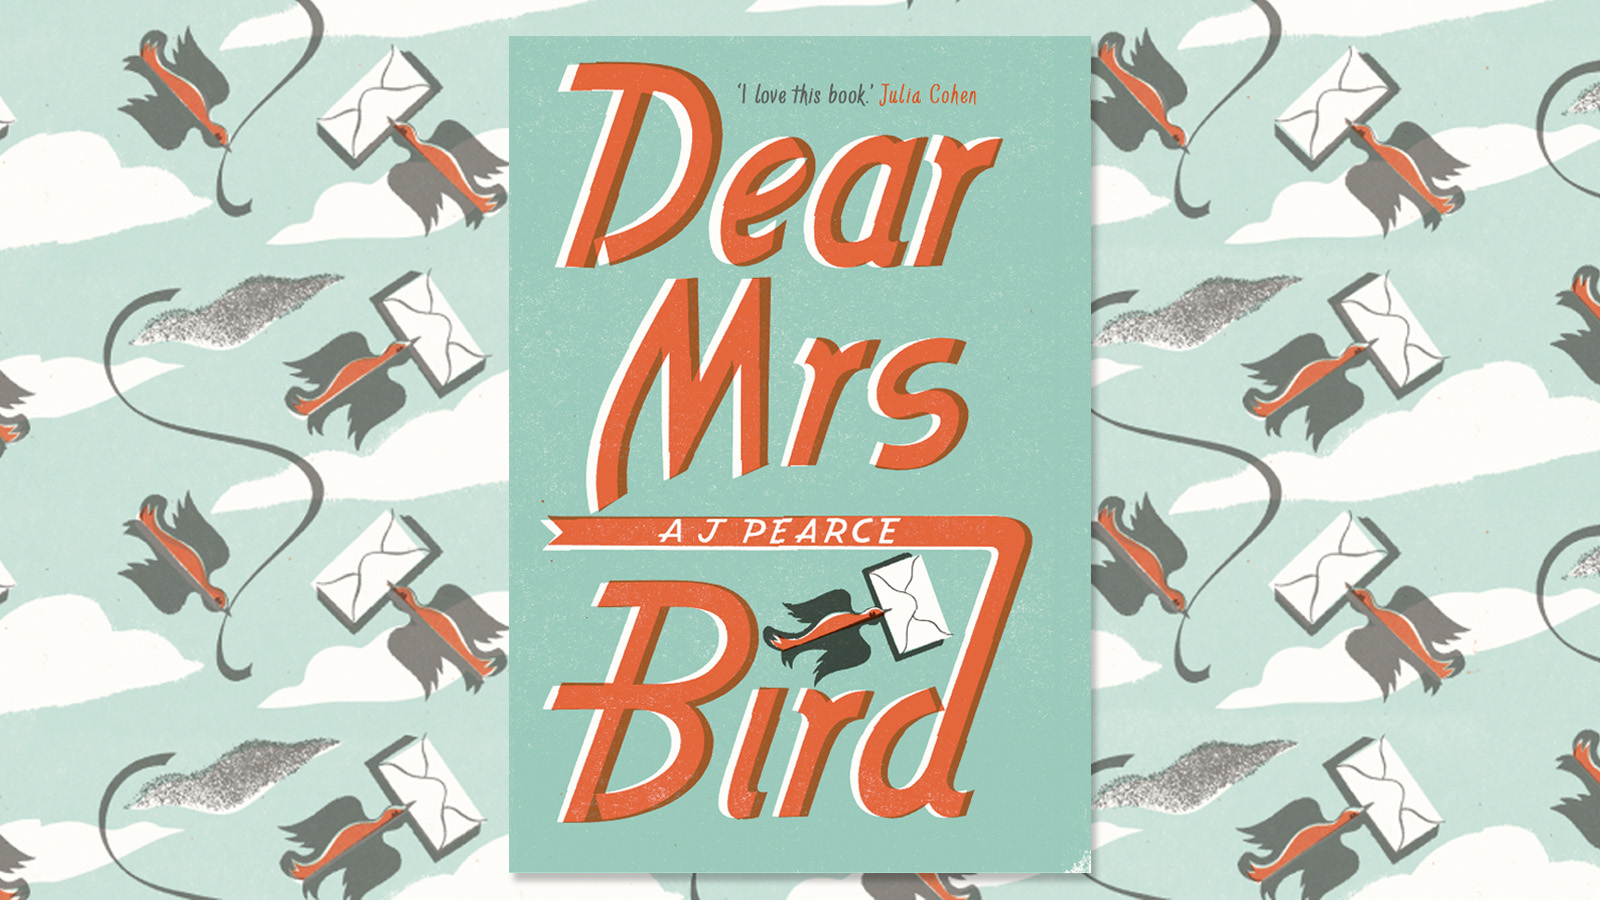 British Women & WW2 Dear-mrs-bird-cover-design-header.jpg?ext=